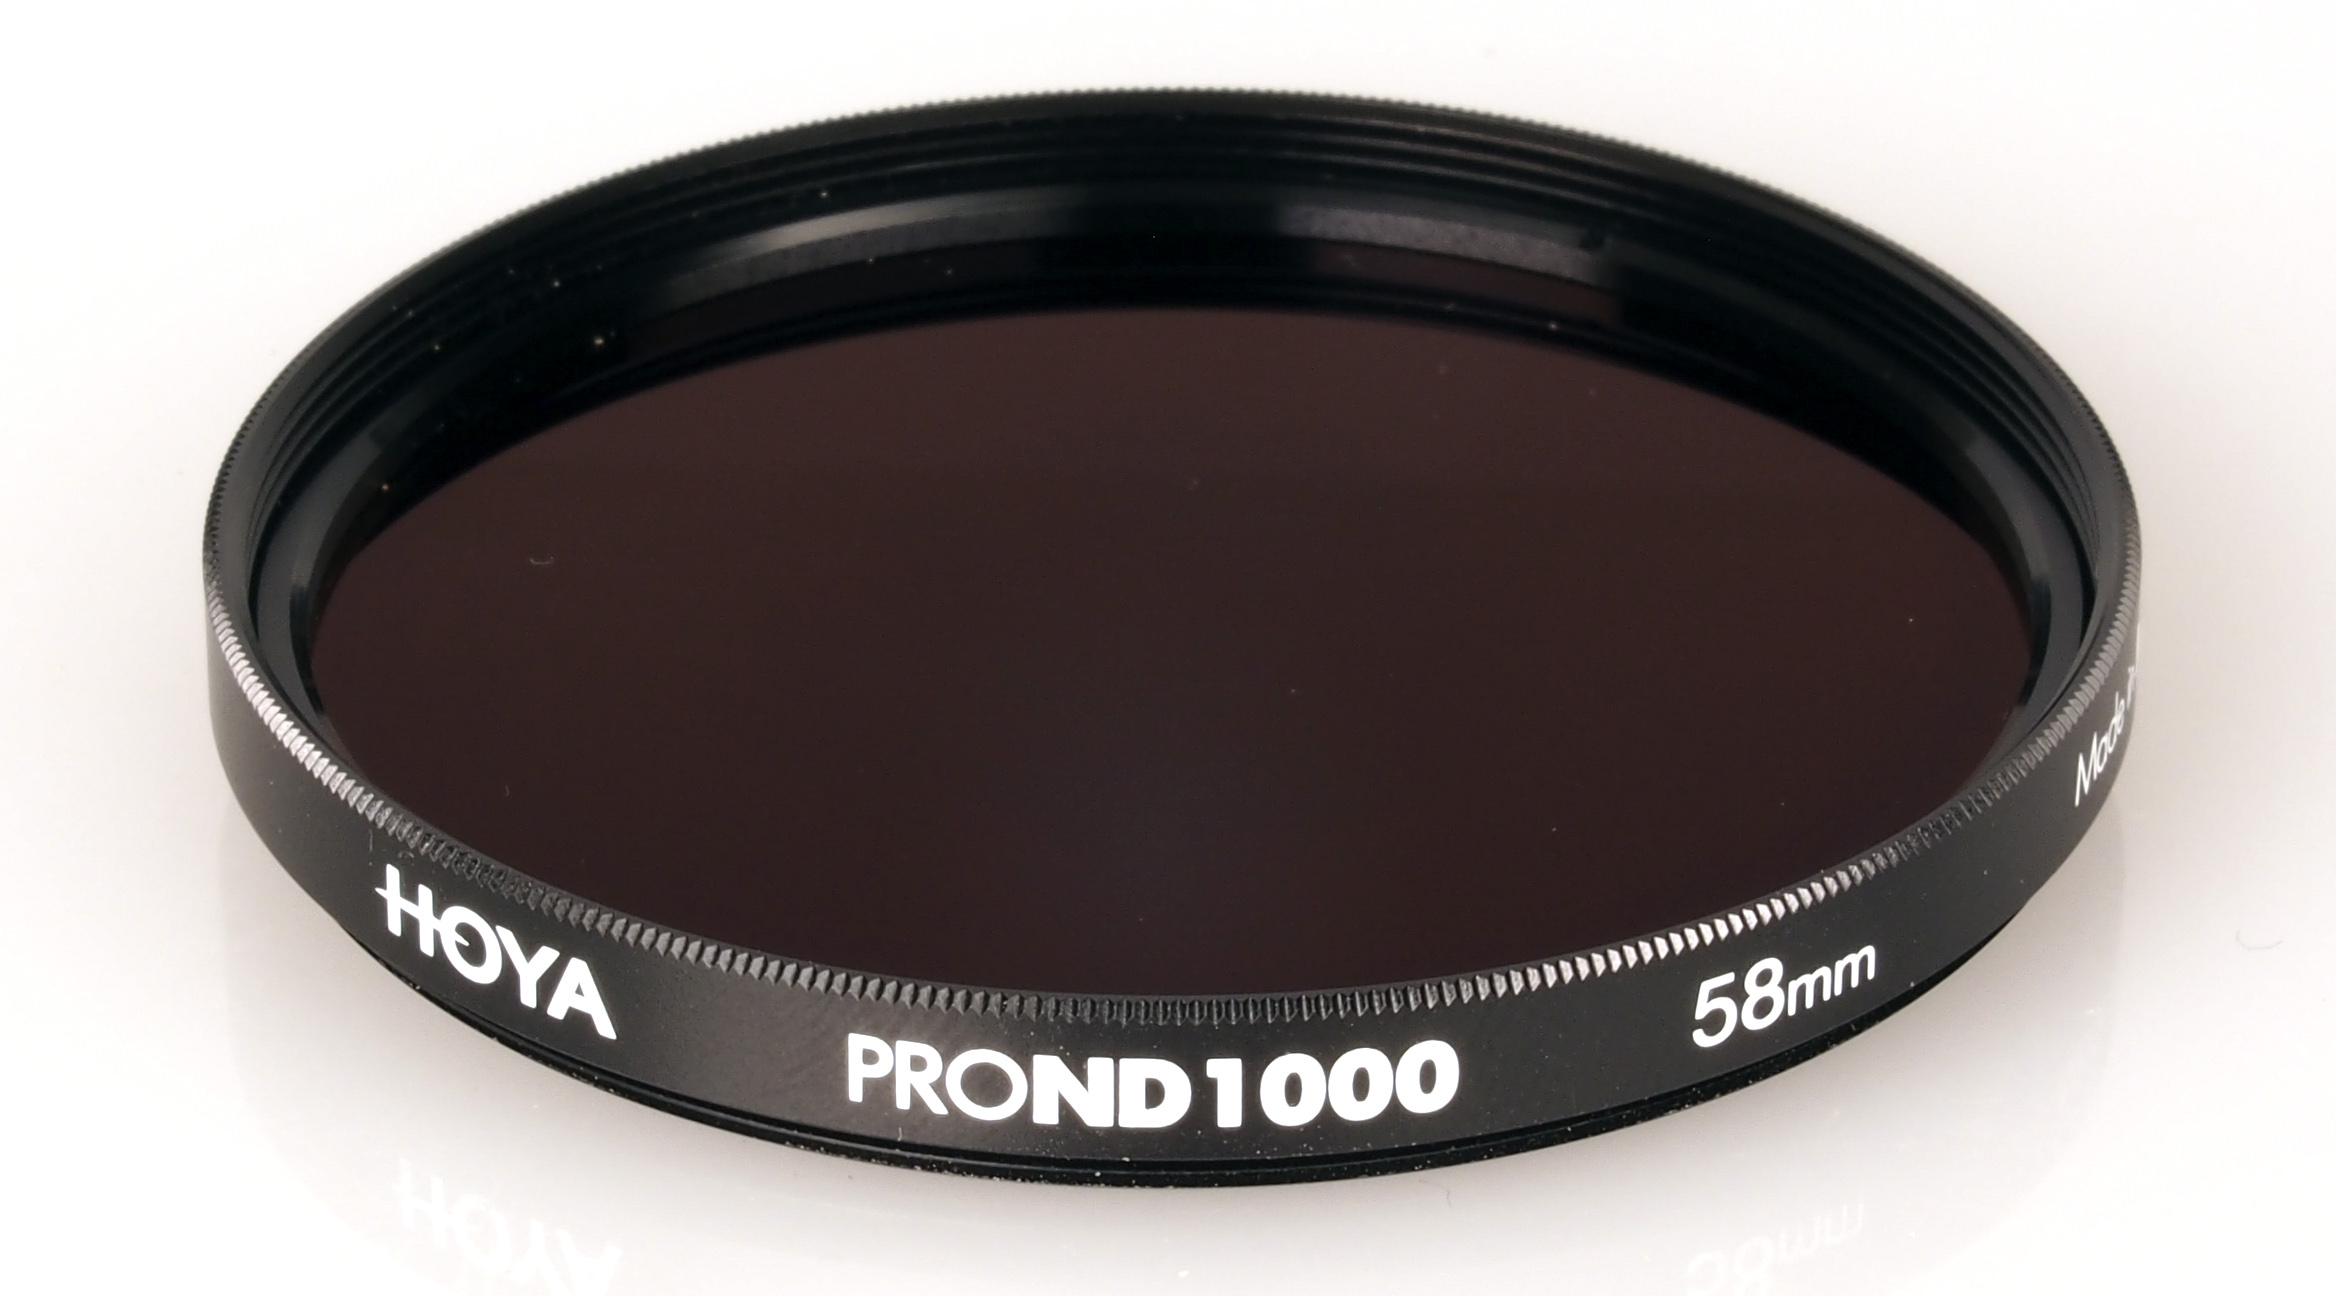 Hoya YPND100067 Pro ND-Filter (Neutral Density 1000, 67mm)